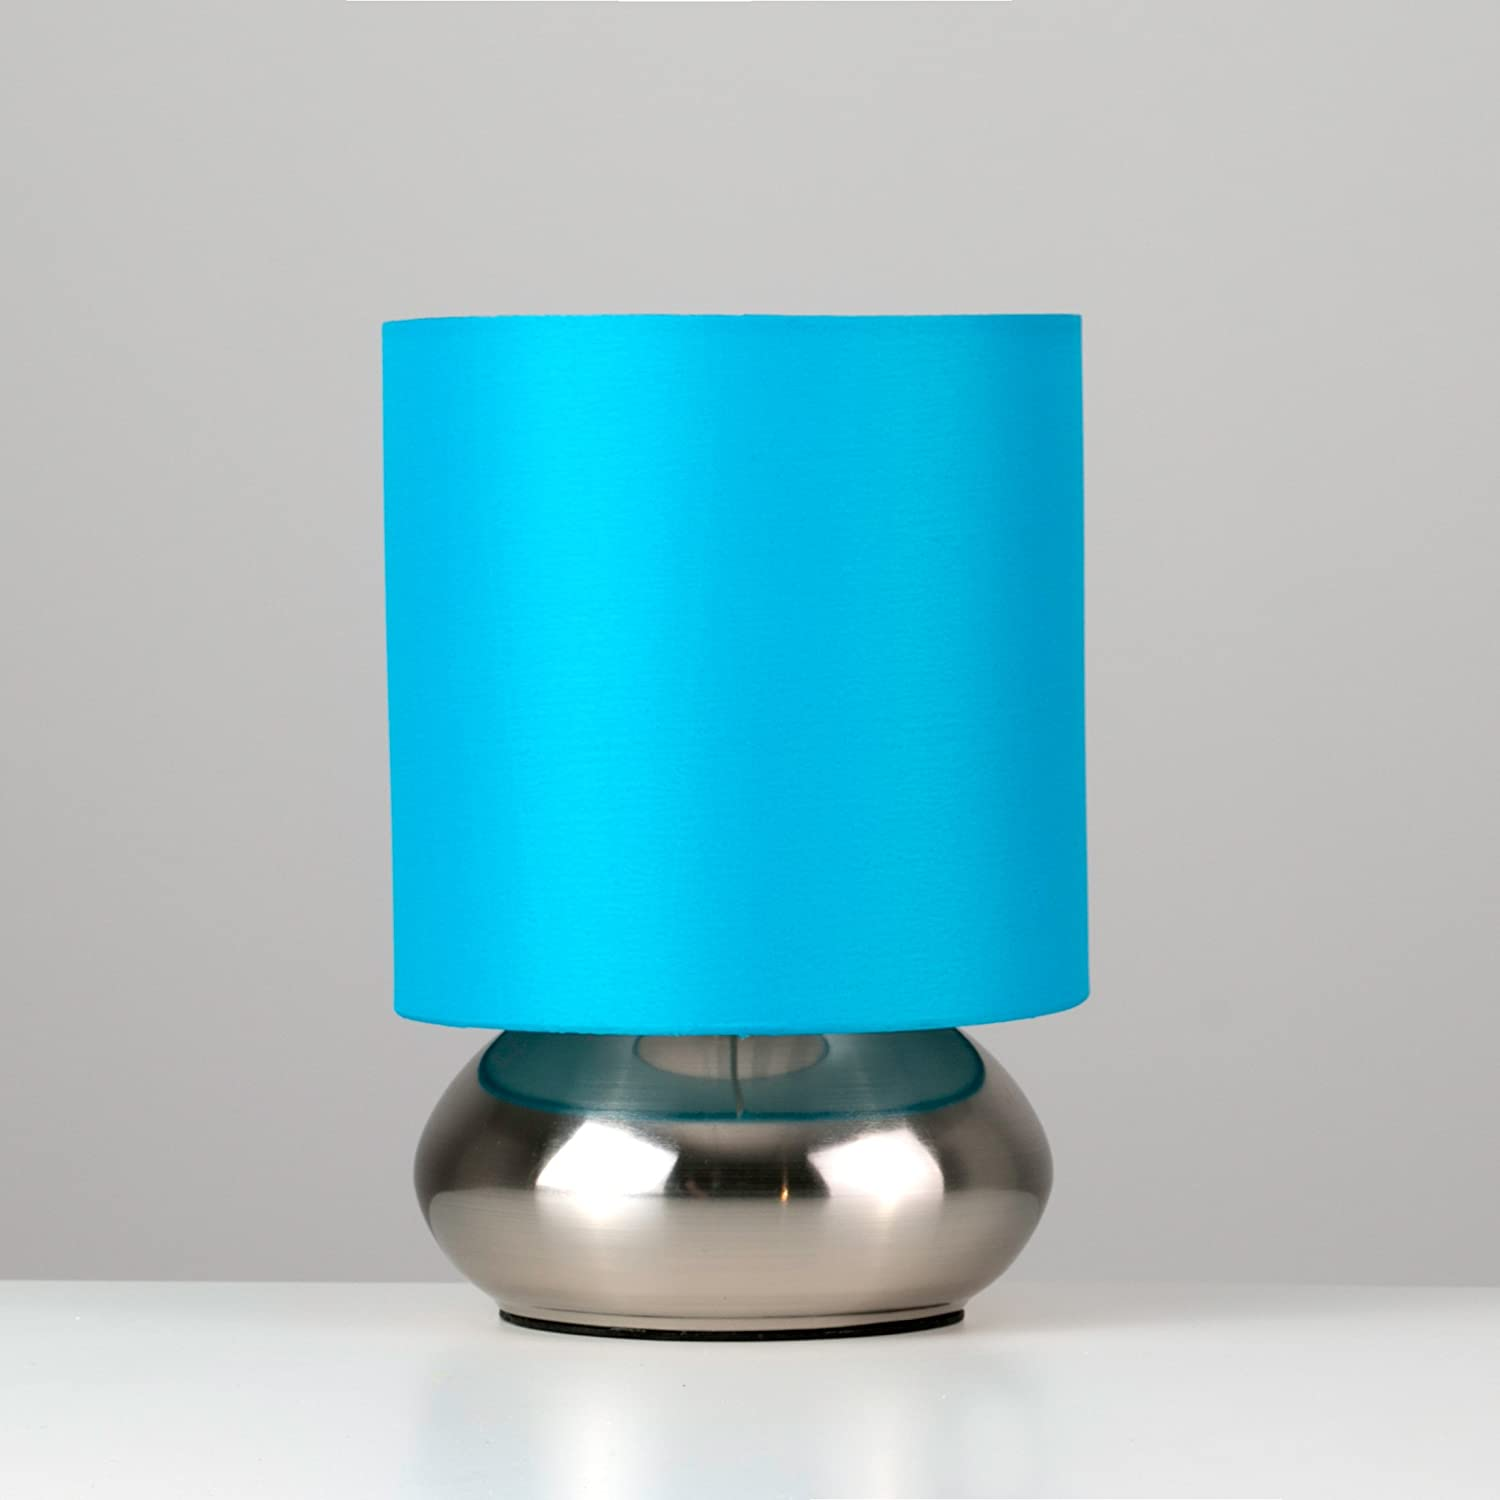 Pair Of   Modern Chrome Touch Table Lamps With Blue Shades: Amazon.co.uk:  Kitchen U0026 Home